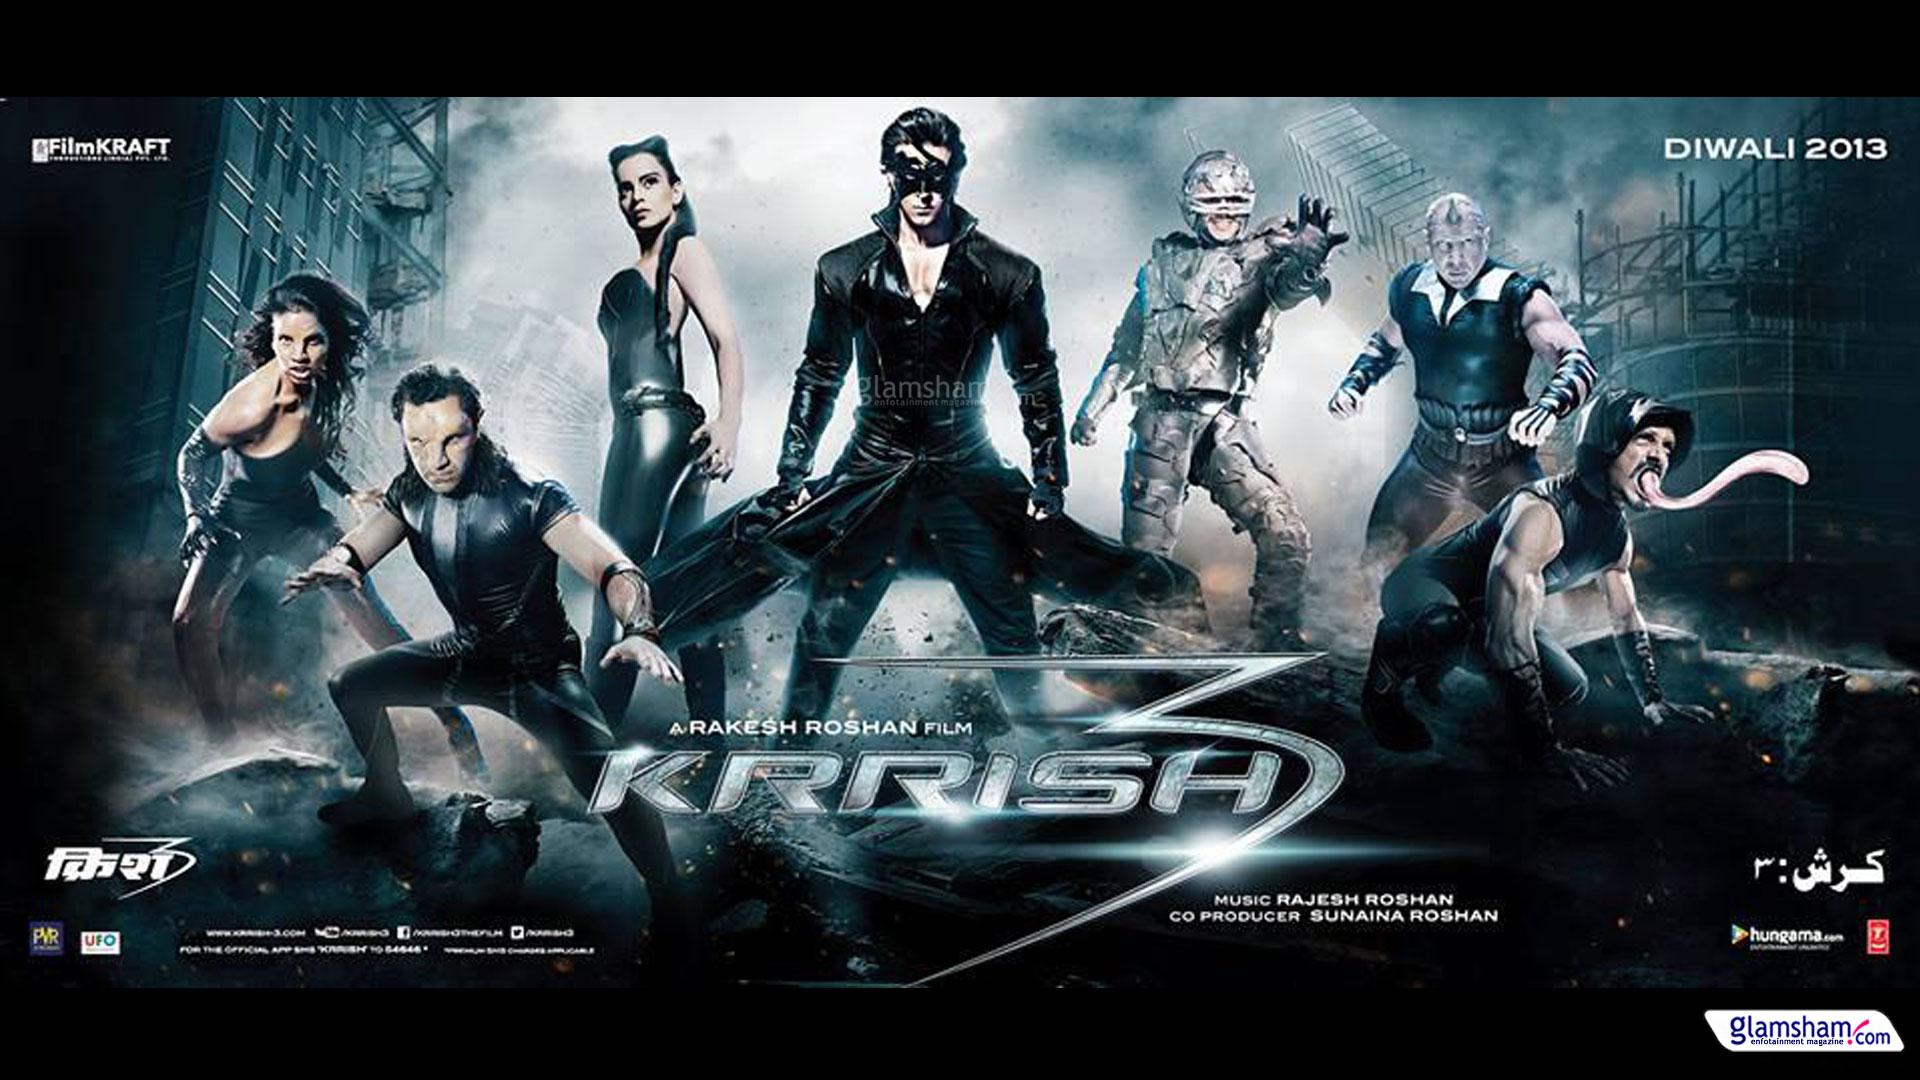 Krrish 3 high resolution image 55837